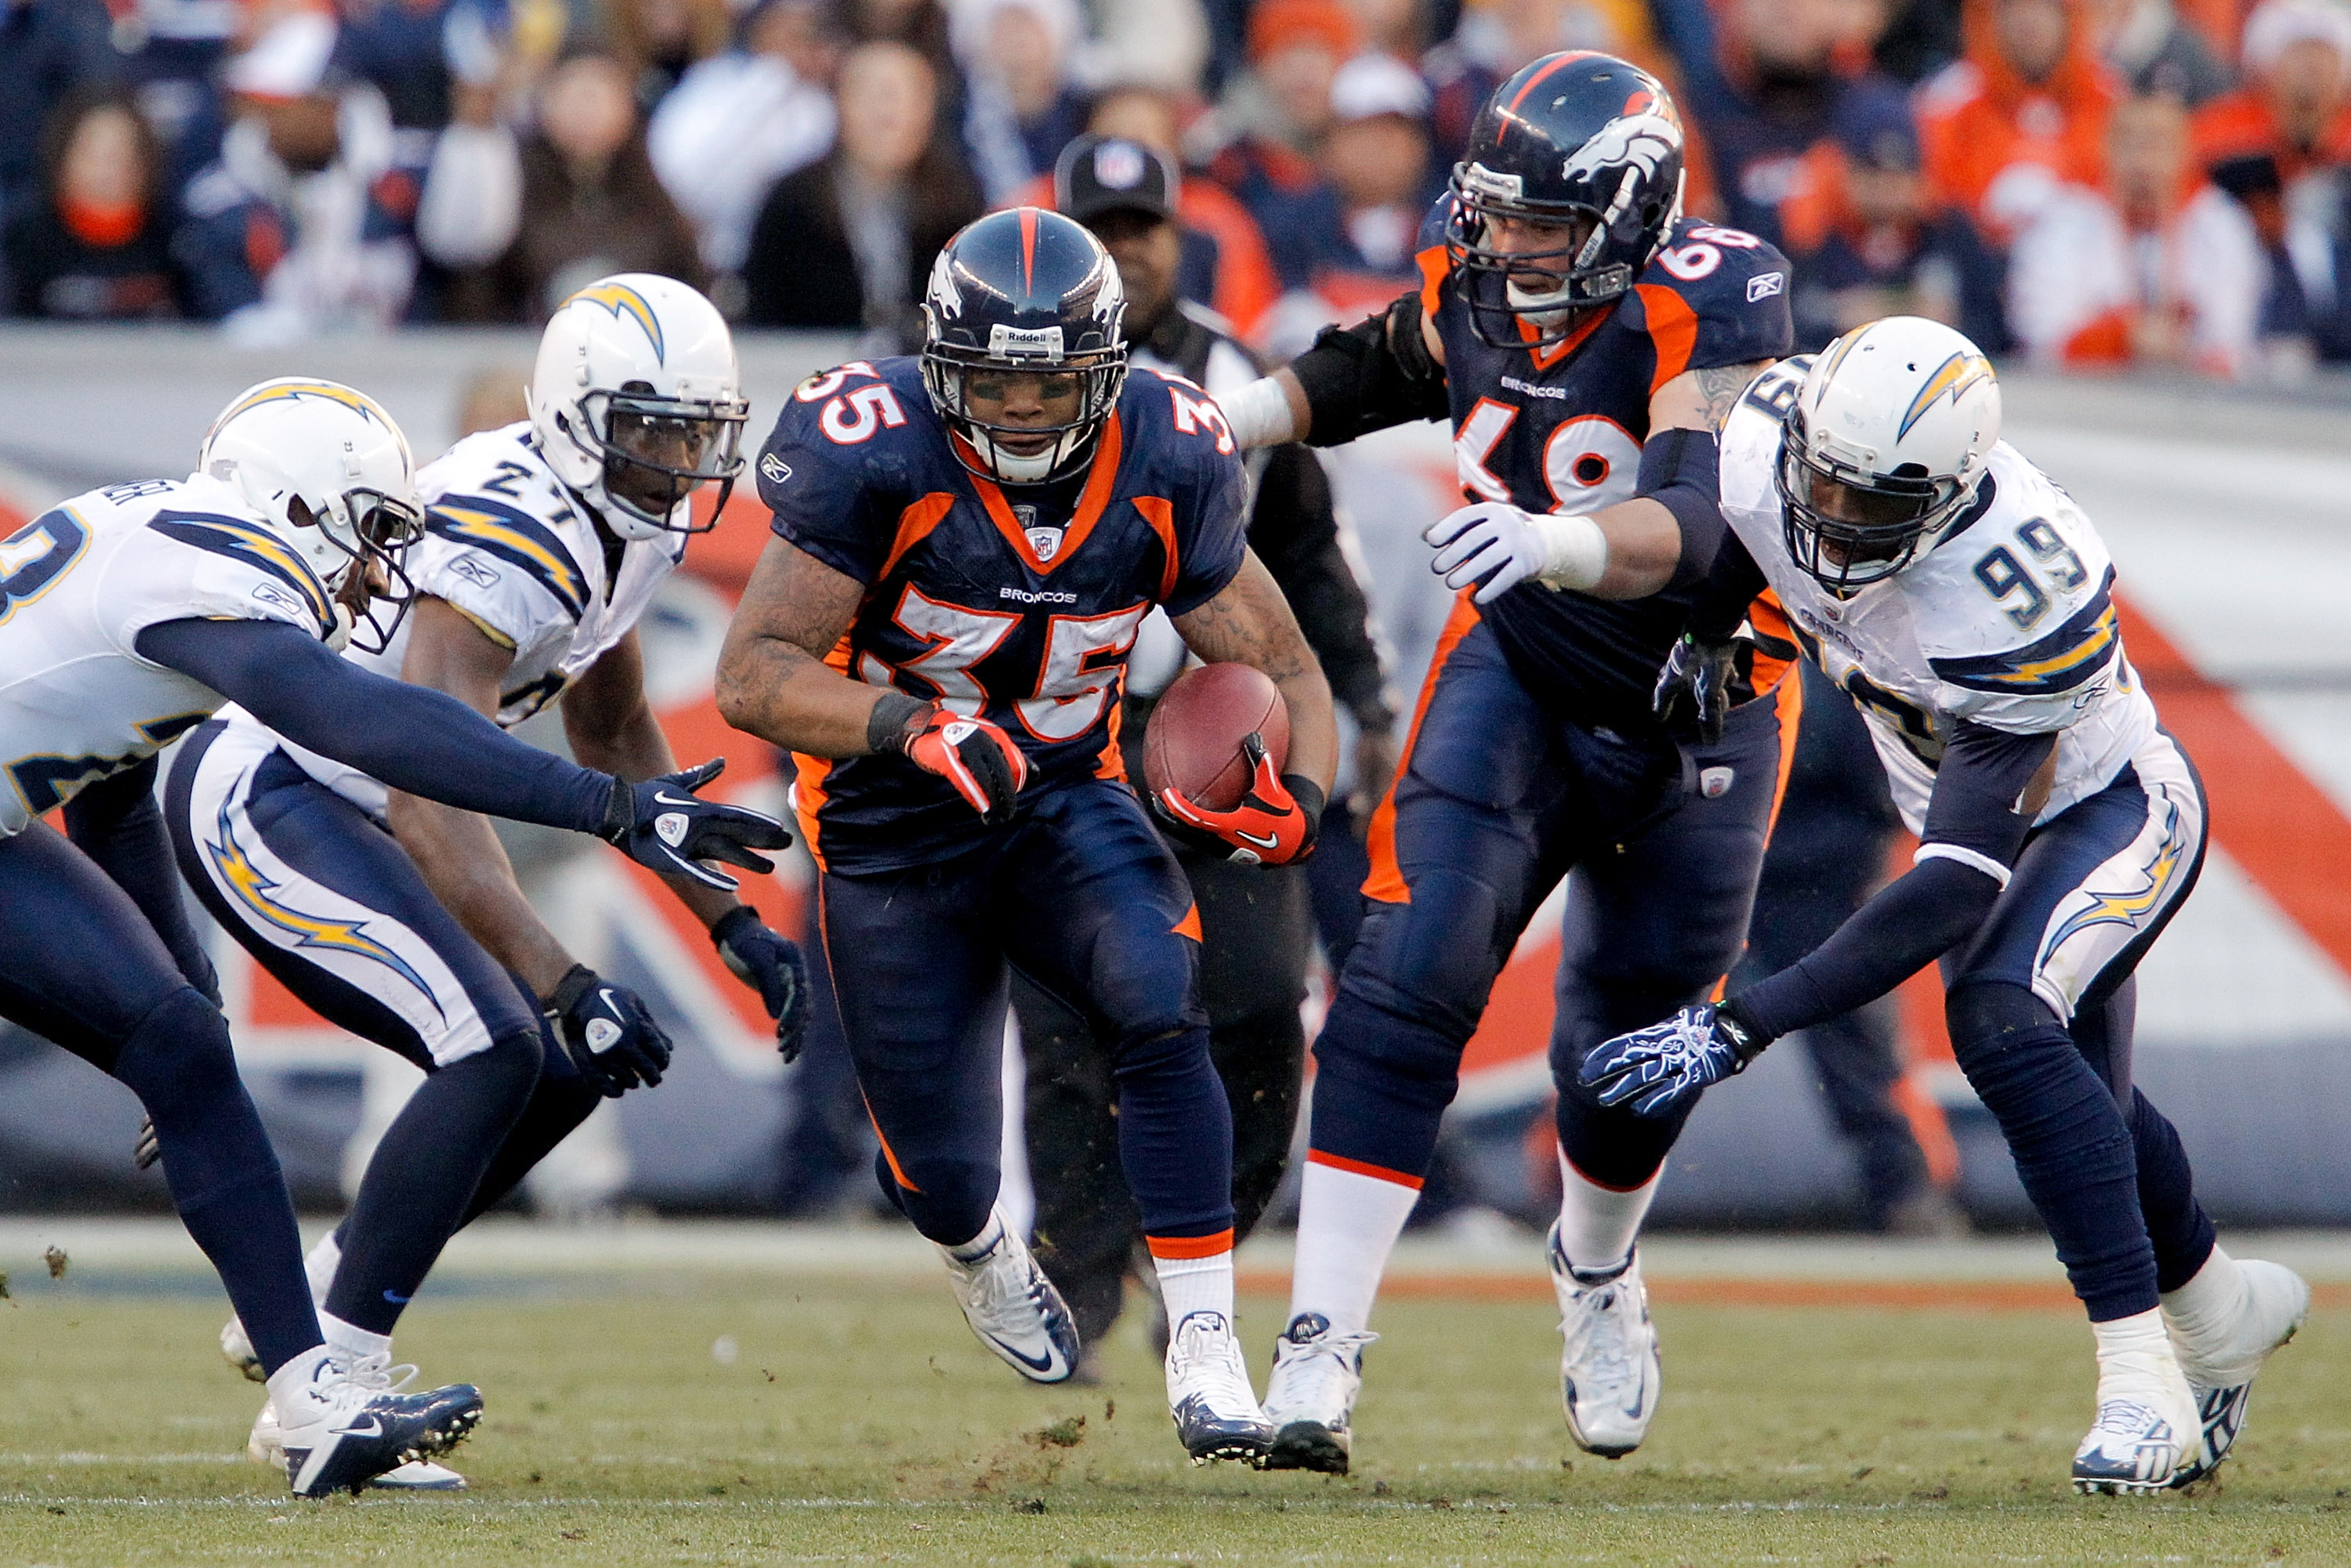 DENVER, CO - JANUARY 2:  Running back Lance Ball #35 of the Denver Broncos breaks through a hole of San Diego defenders during the second quarter at INVESCO Field at Mile High on January 2, 2011 in Denver, Colorado. (Photo by Justin Edmonds/Getty Images)